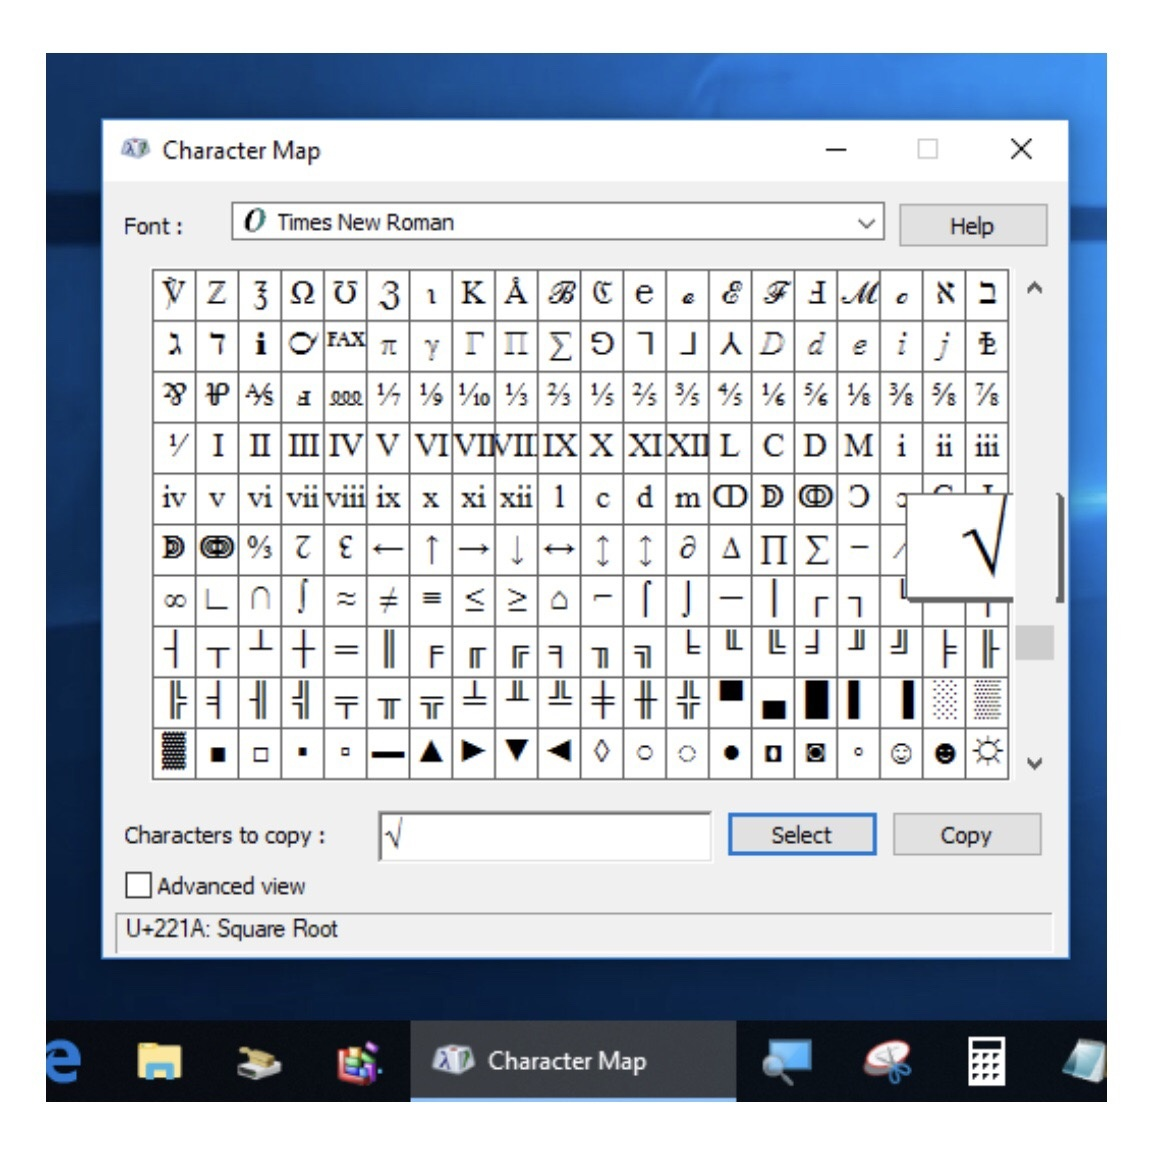 How to insert the square root symbol in Microsoft Word - Quora